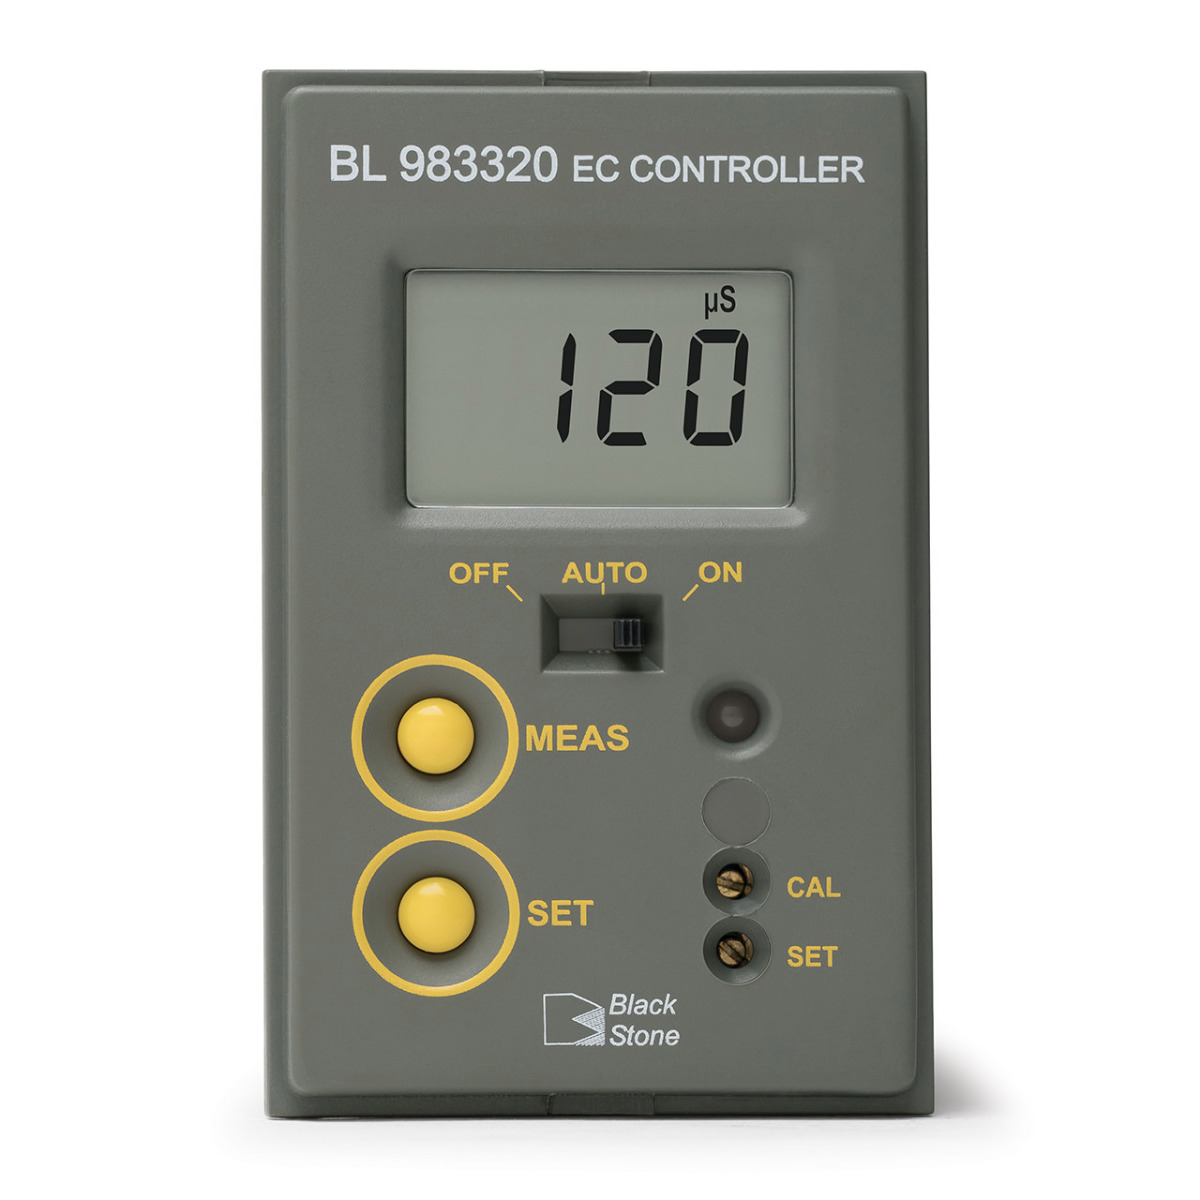 Conductivity (EC) Mini Controller (0.0 - 199.9 μS/cm) - BL983320